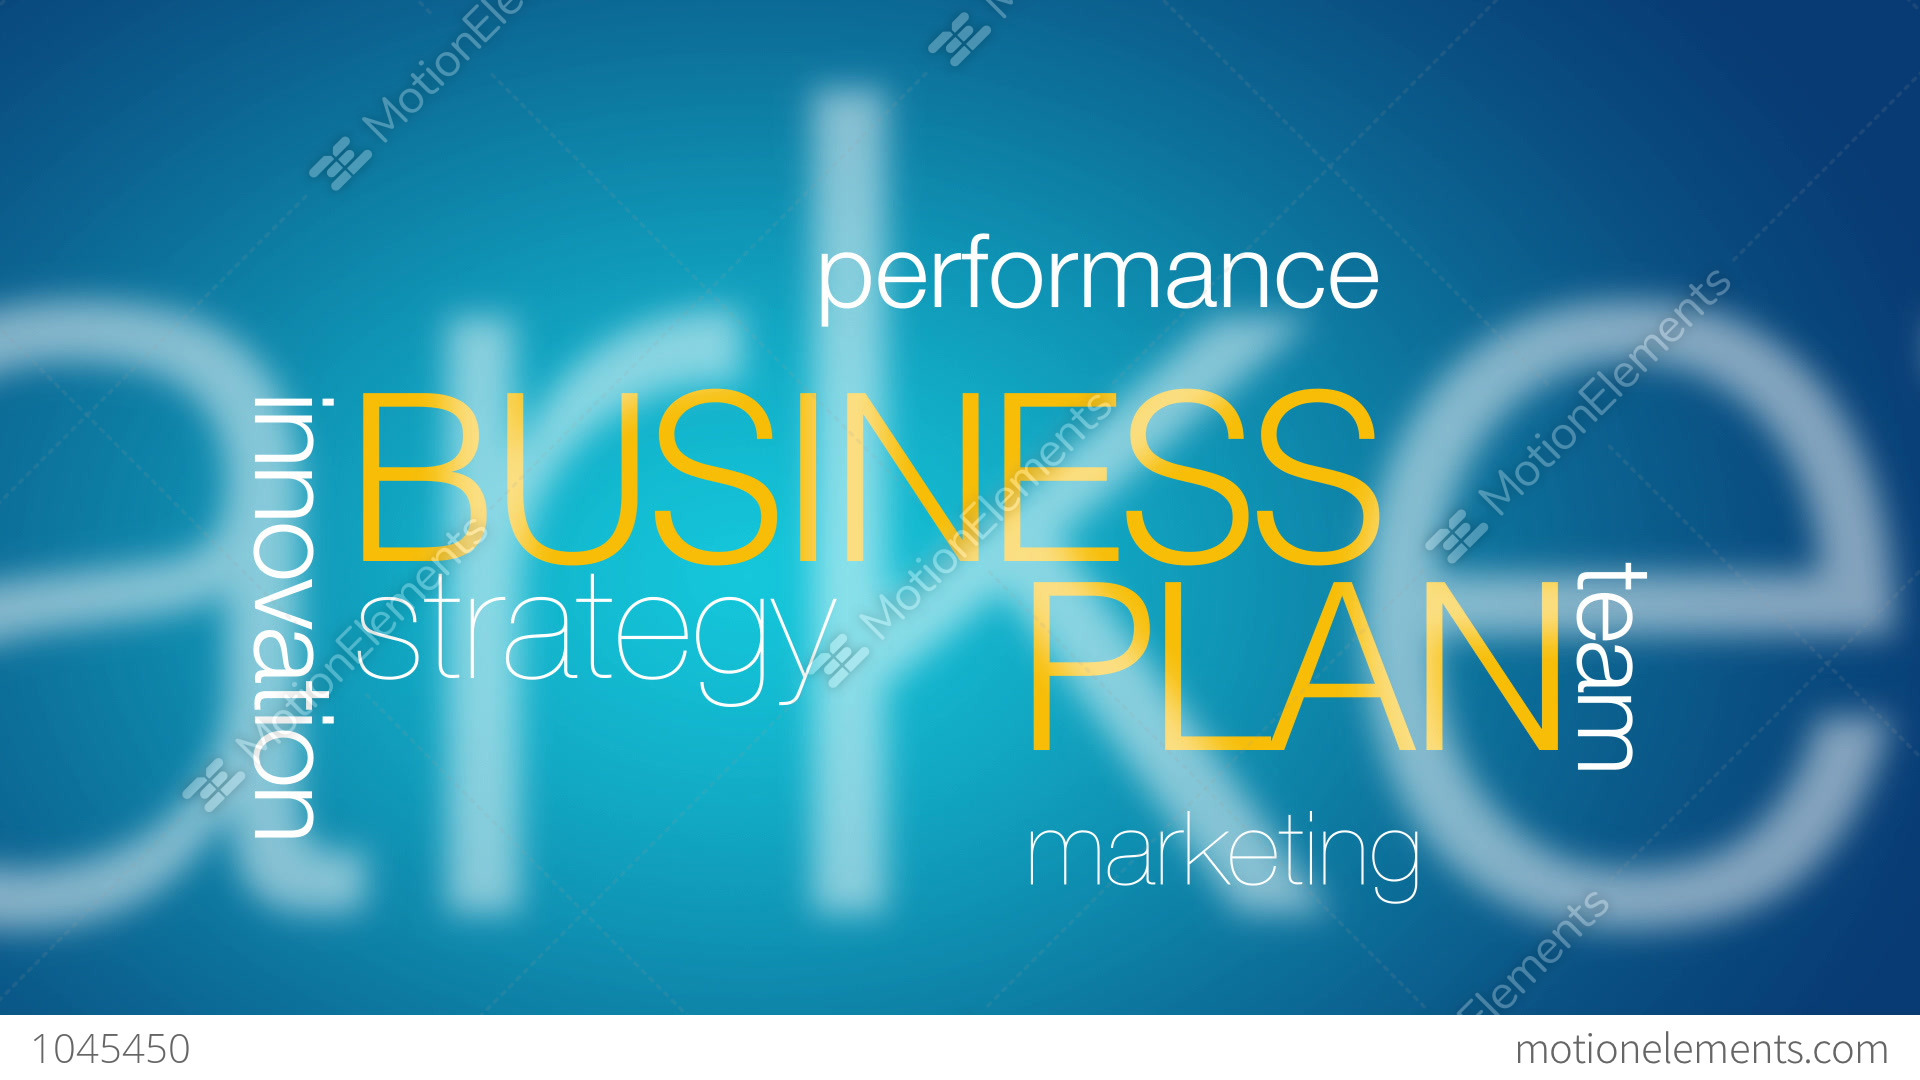 Business Plan Animation - 14/07/2018 18:39 EDT